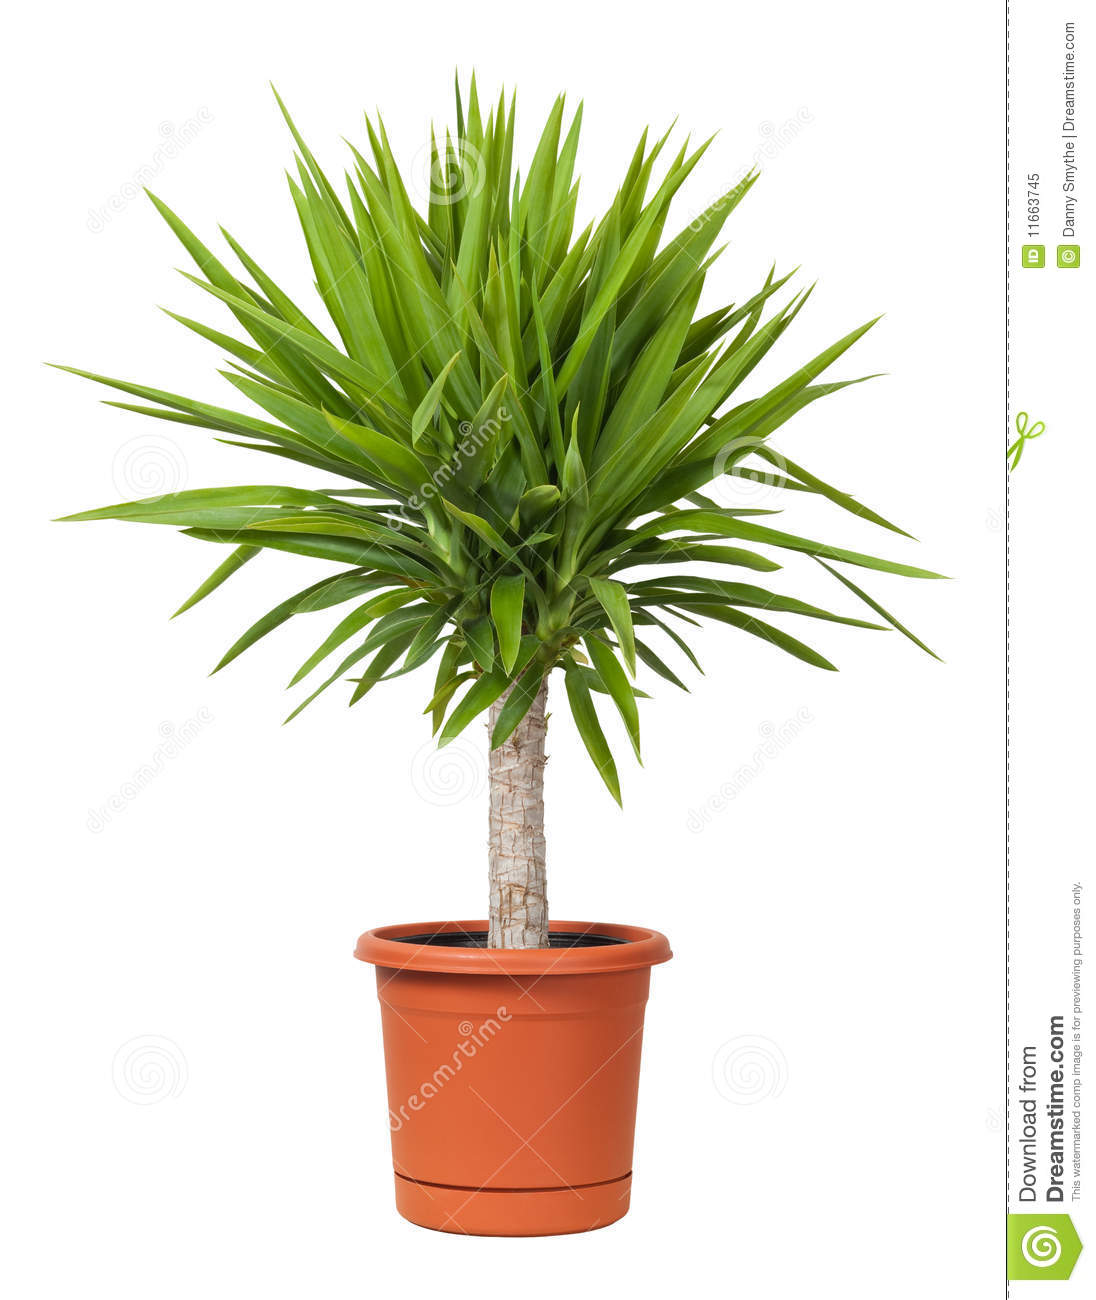 Yucca Potted Plant Isolated Stock Image - Image of flora, plant ... for potted plant transparent  587fsj